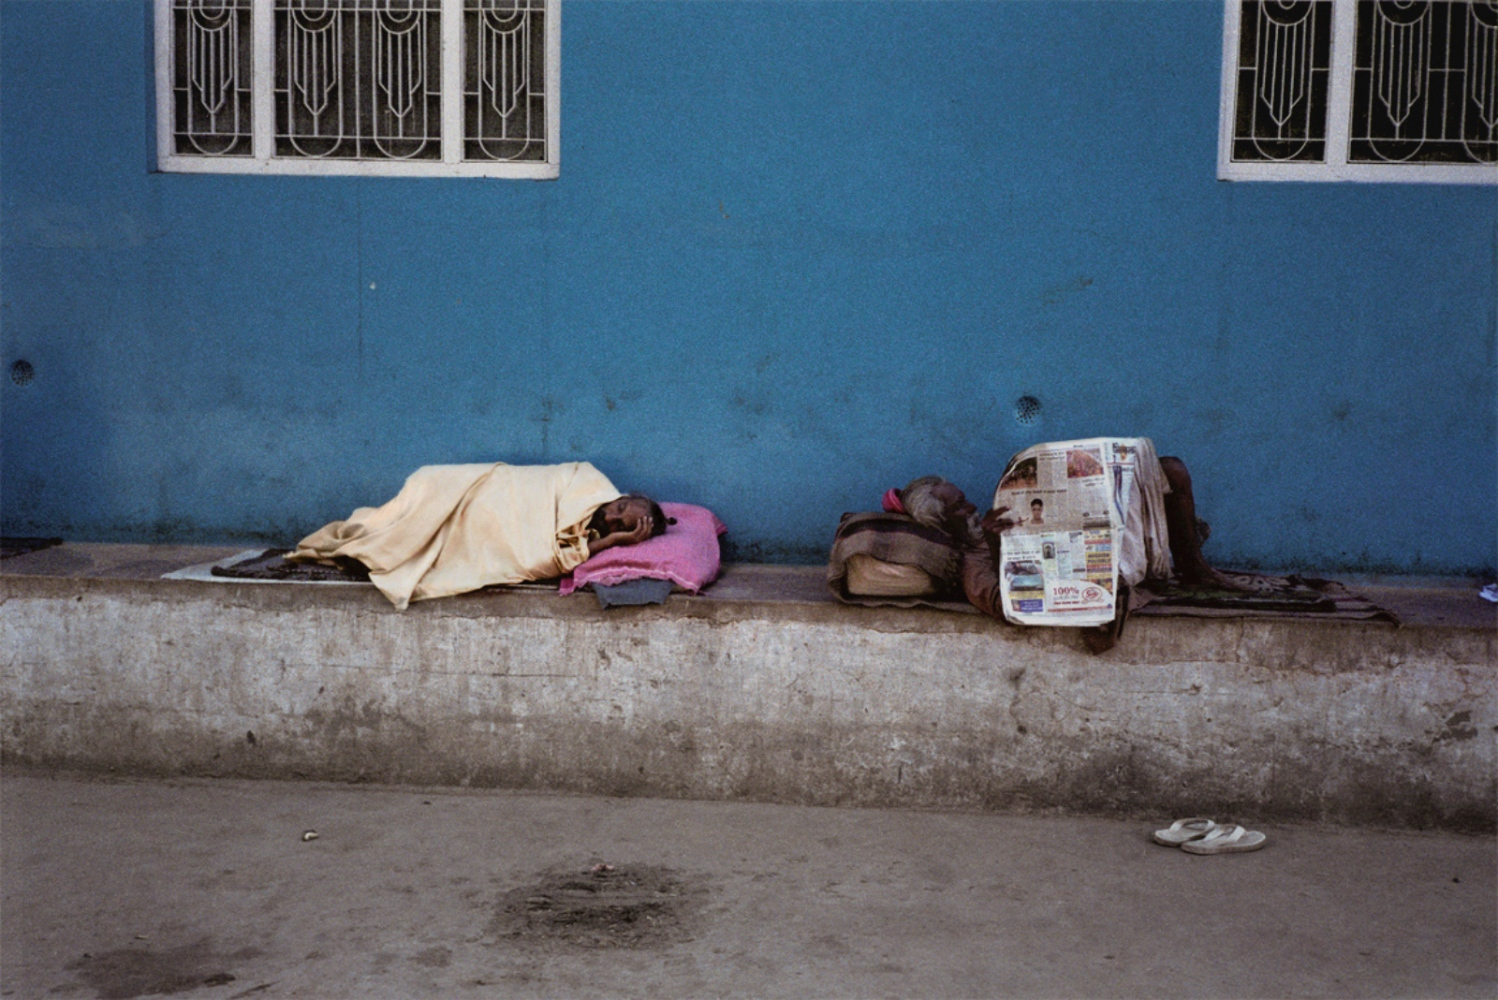 Sleeping Man, Reading Man, Pushkar, India, November 2003